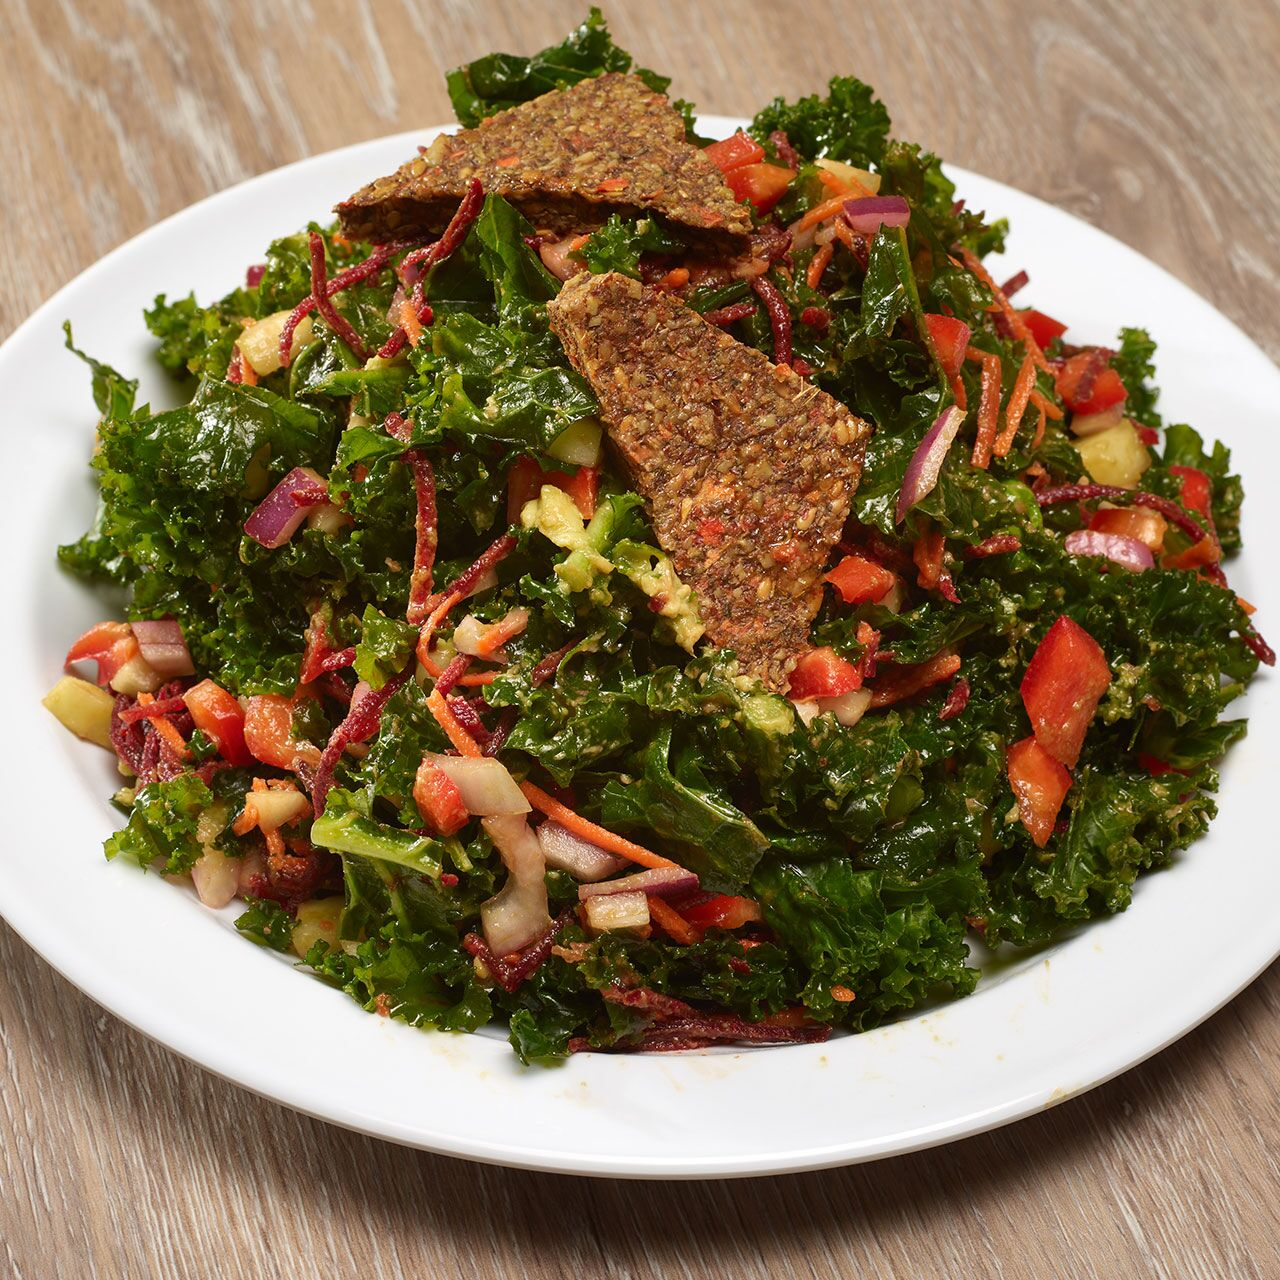 5.	Kale Salad from GRK Fresh Greek:{ }Kale, romaine, tomatoes, carrots, black eyed peas, Greek feta and lemon herb vinaigrette. (Image: Courtesy Grubhub)